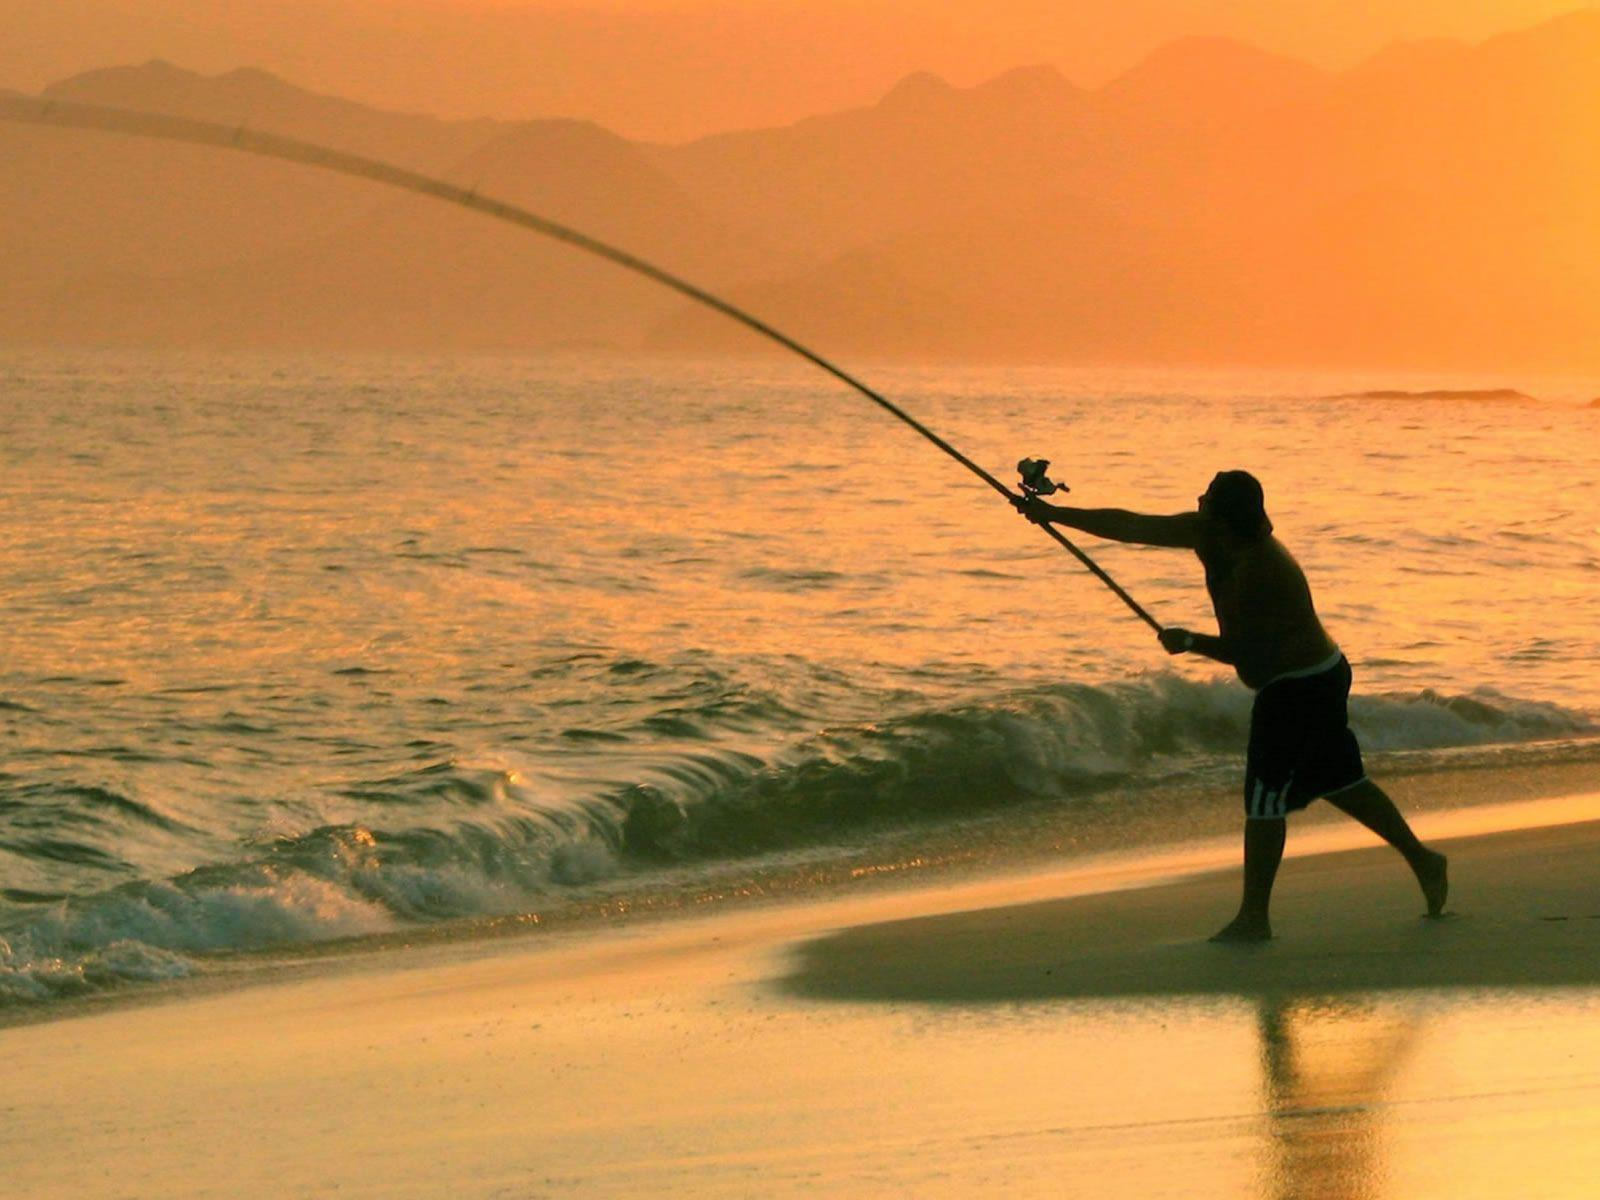 Wallpapers For > Hd Saltwater Fishing Wallpapers